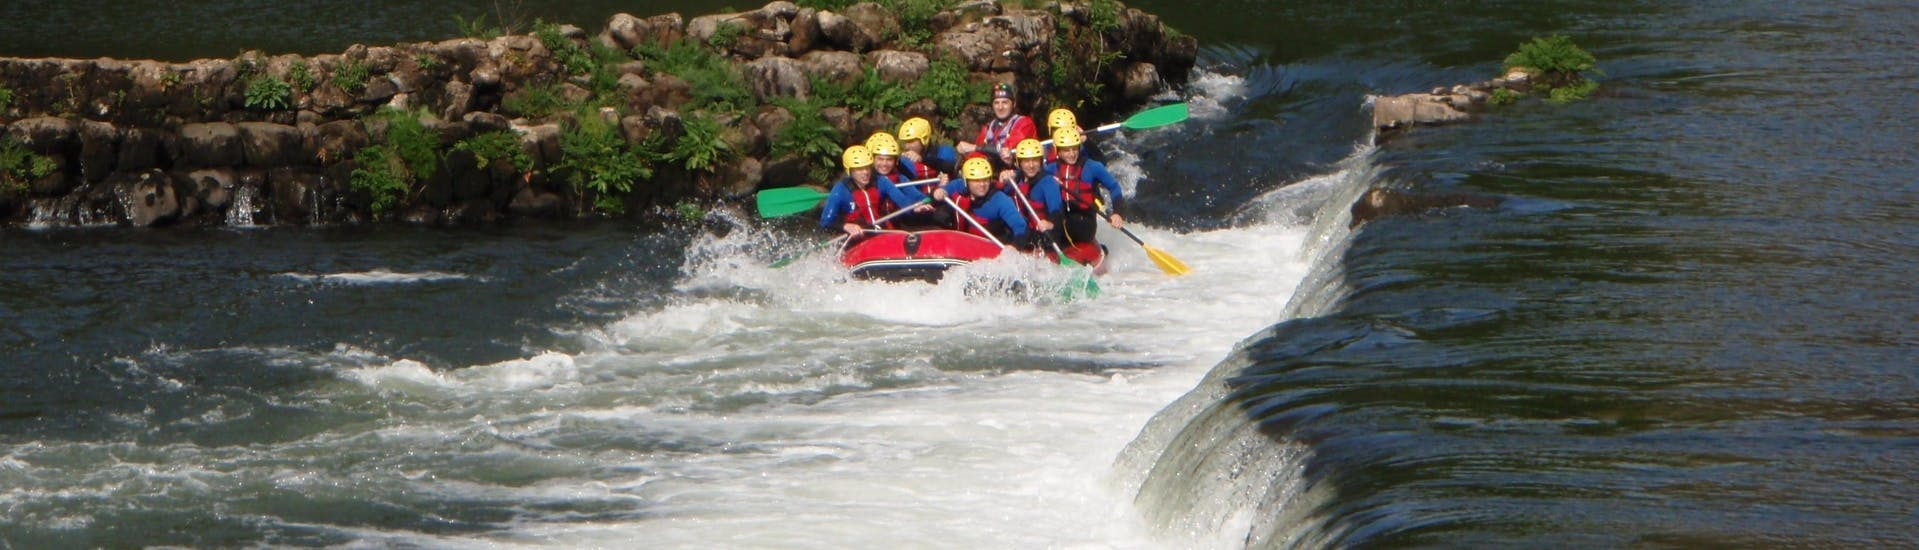 Classic Rafting on the Río Ulla with Amextreme Aventura Galicia - Hero image